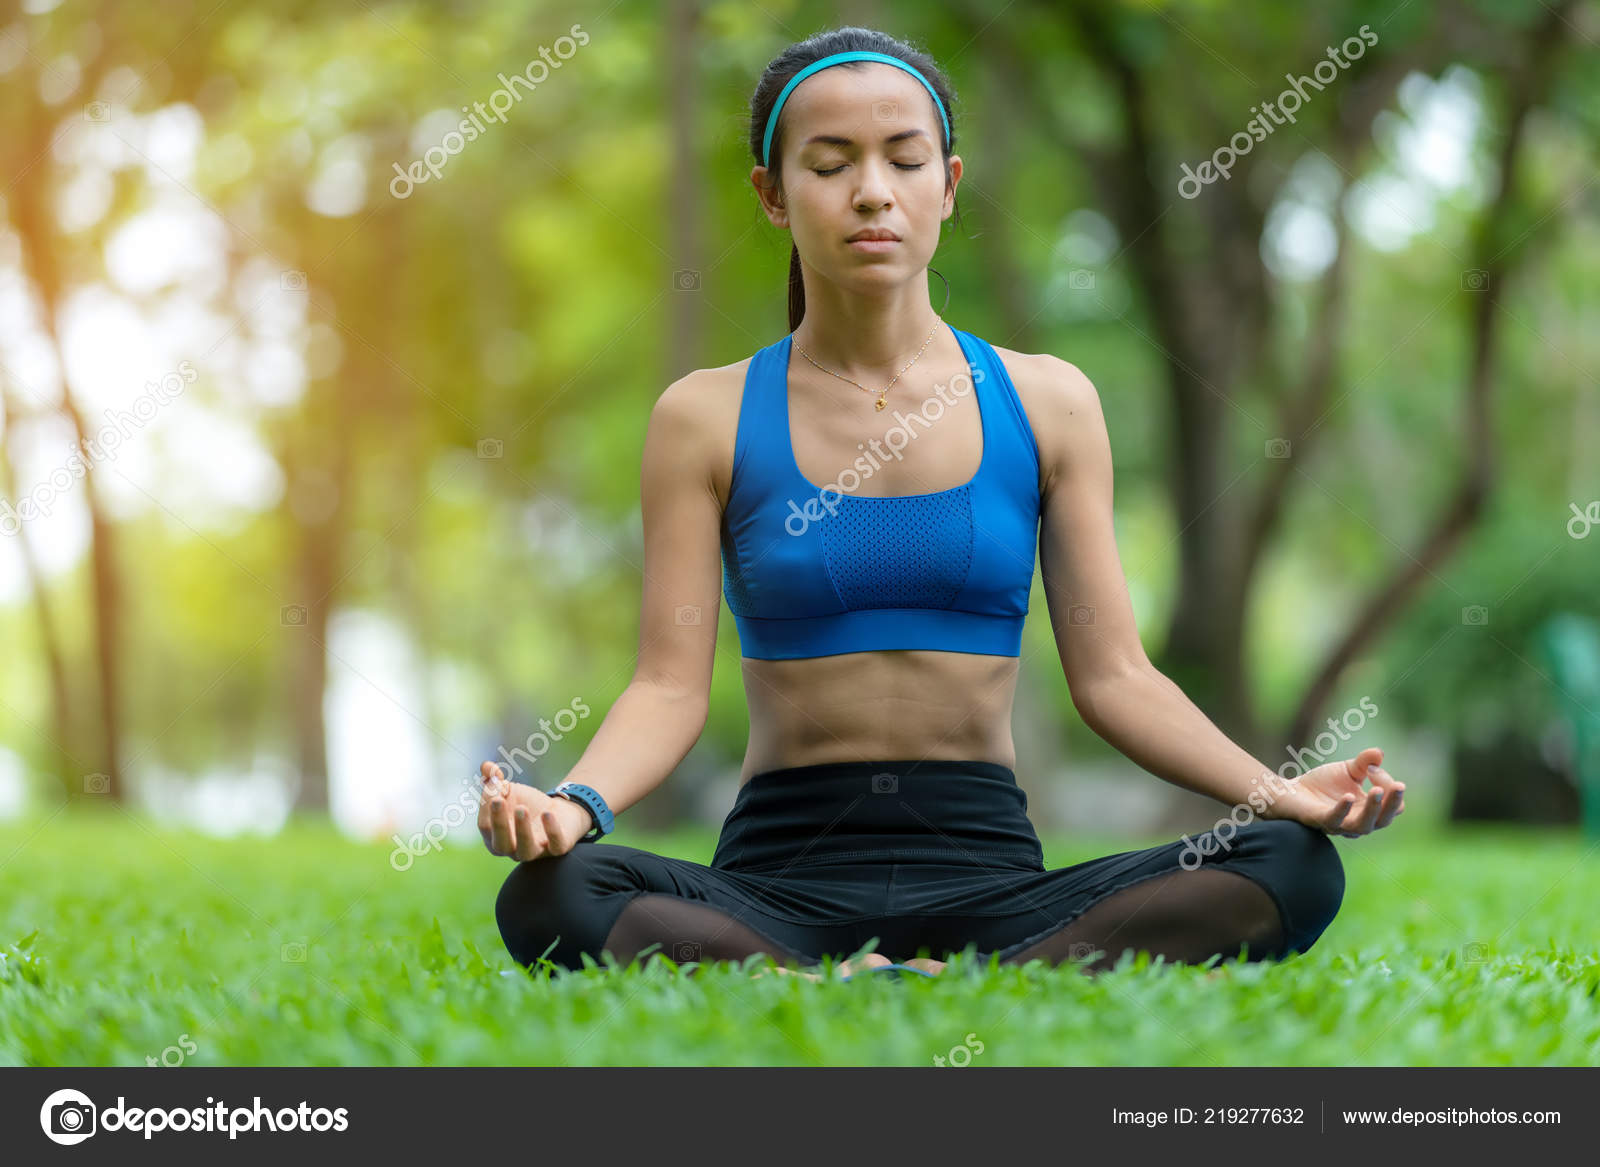 Pictures Mind Relaxing Healthy Lifestyle Meditation Mind Yoga Woman Relax Vital Energy Park Stock Photo C Freebird7977 219277632